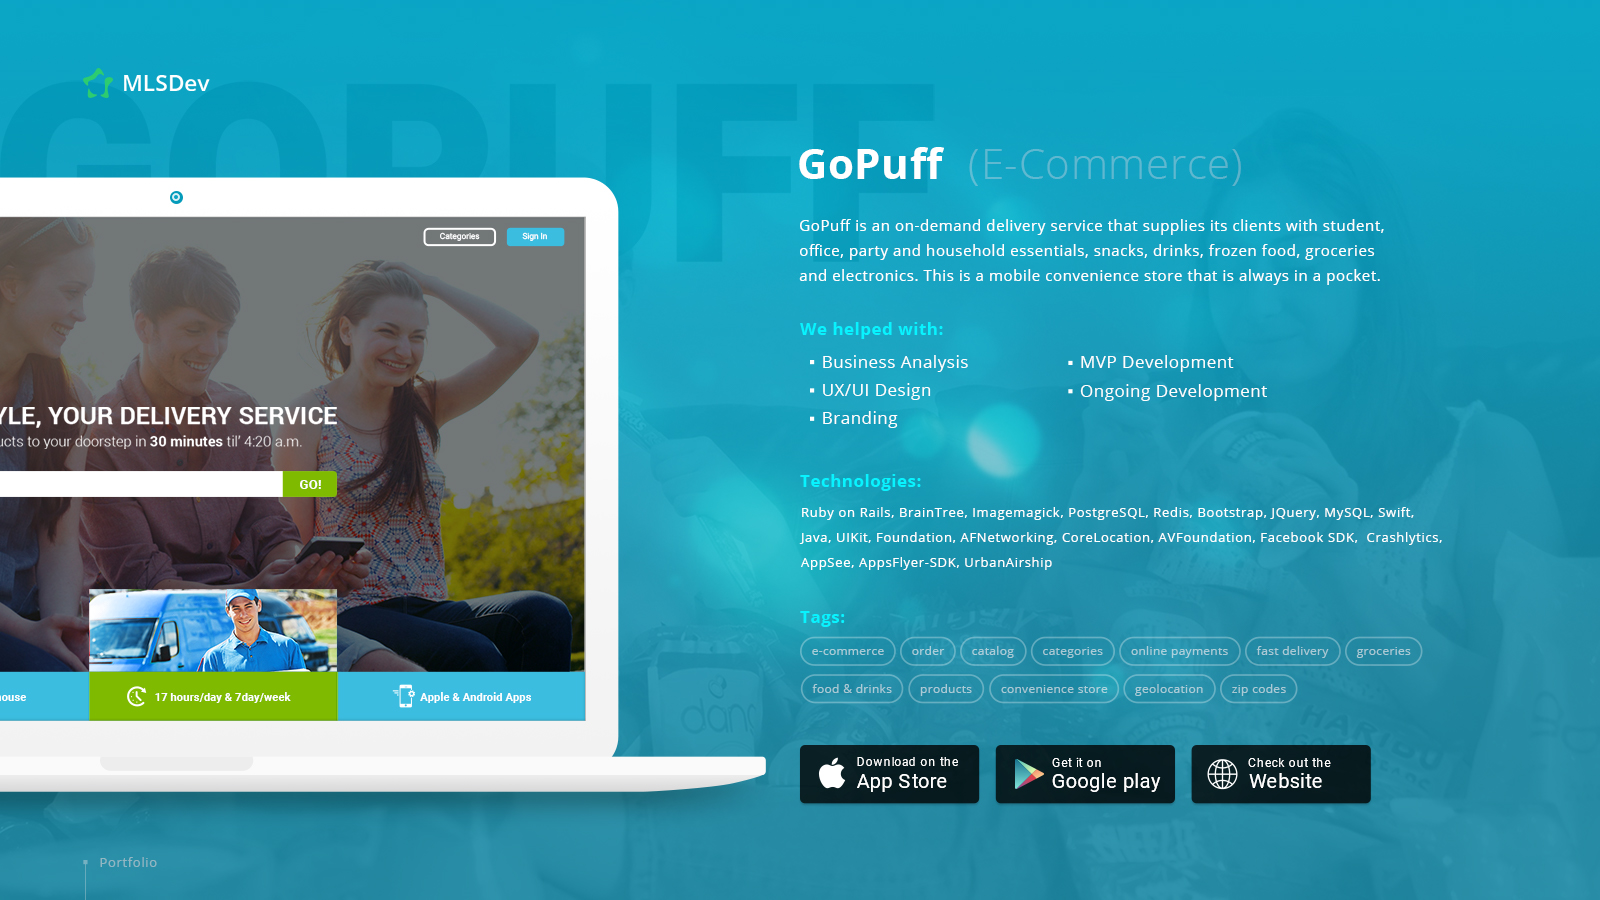 GoPuff: Online Ordering and Delivery Service in the USA